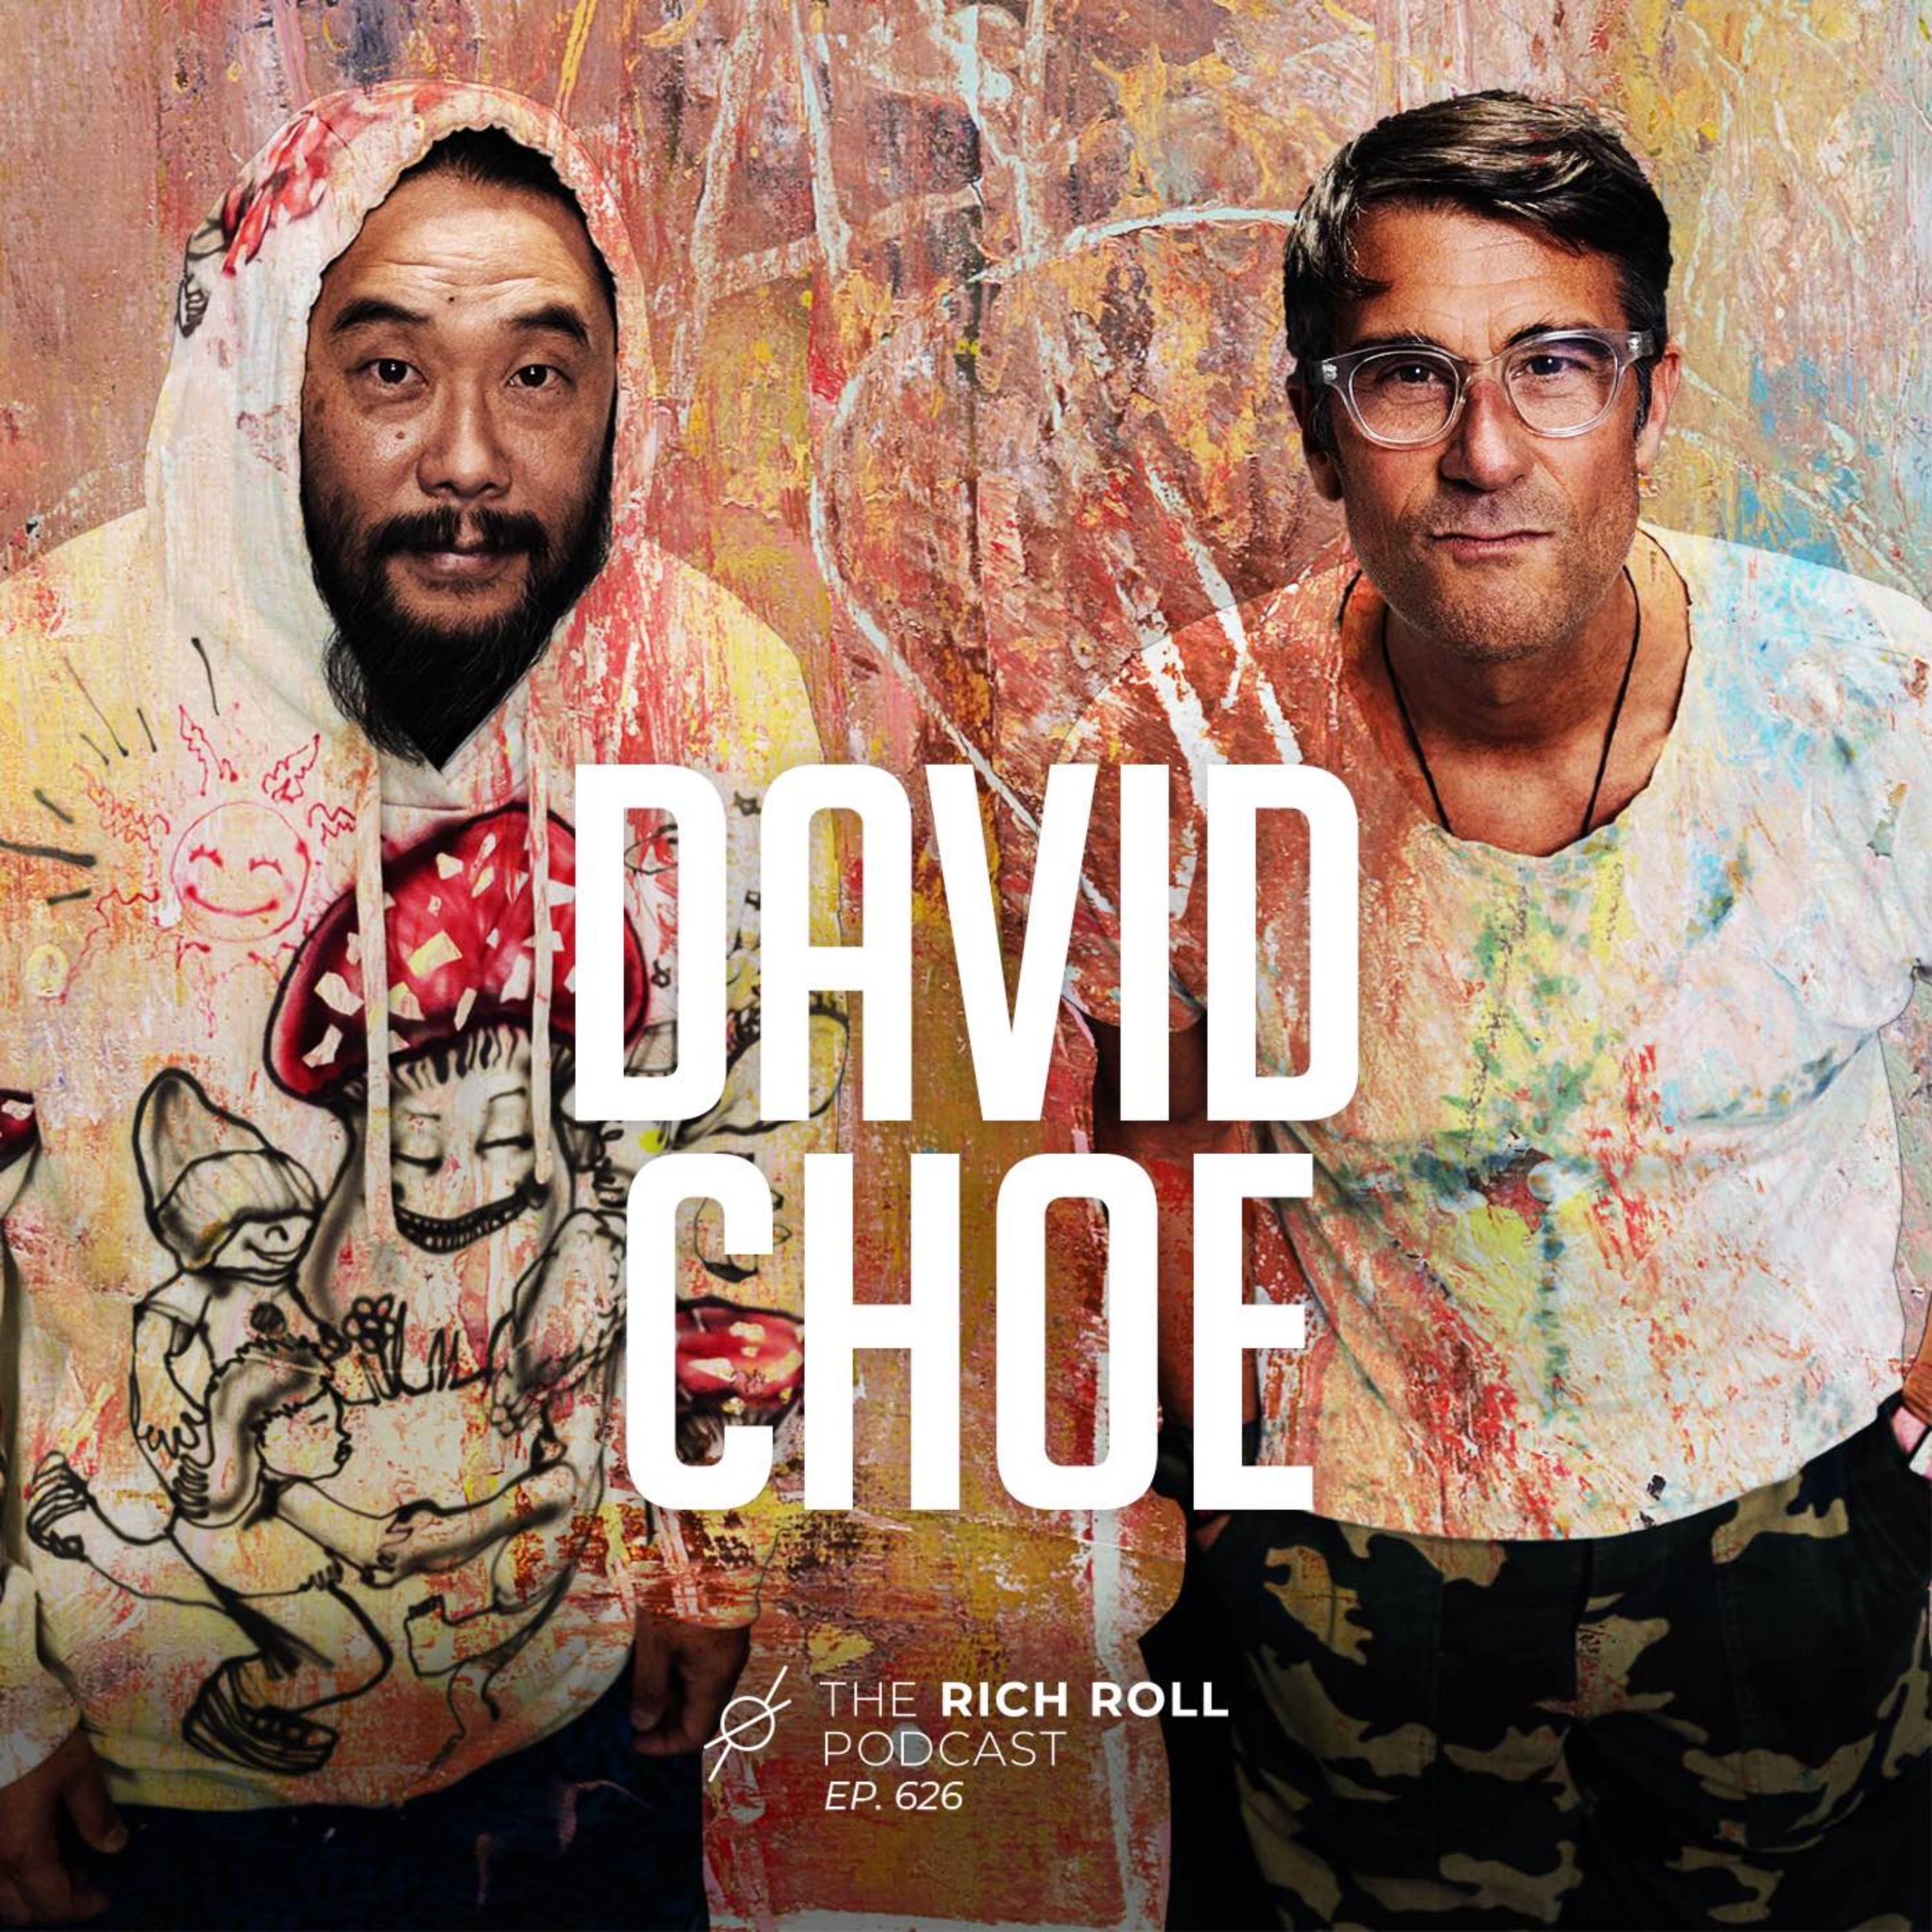 David Choe On Finding Beauty in Brokenness